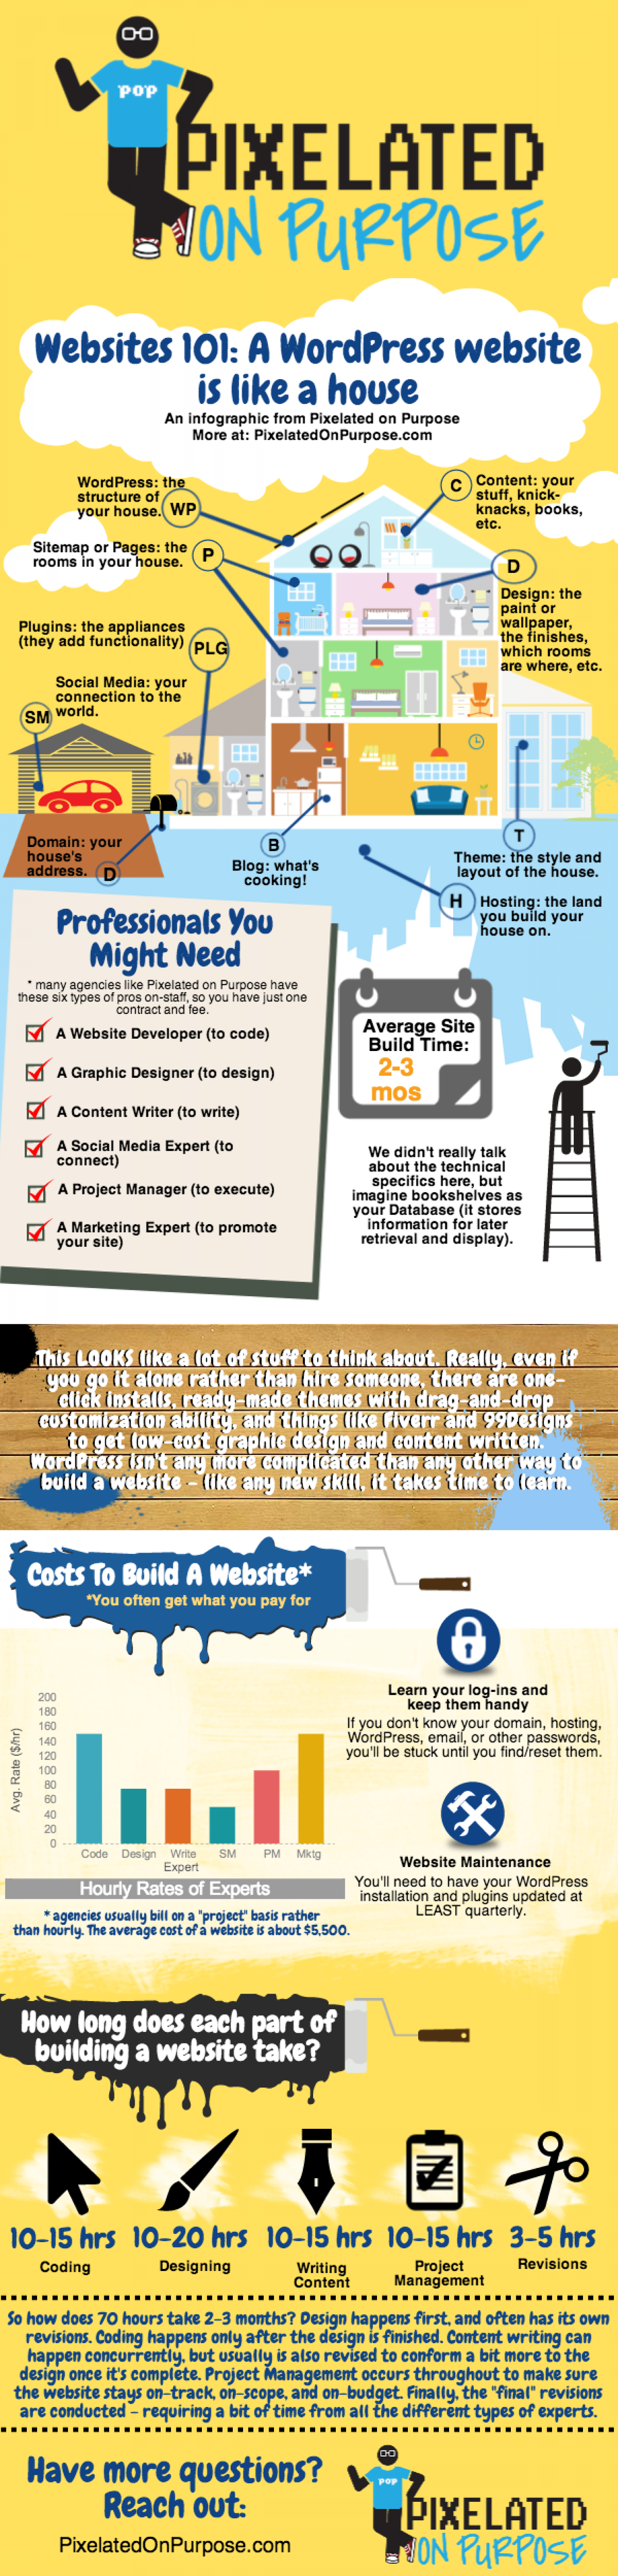 Websites 101: A Website is like a House Infographic